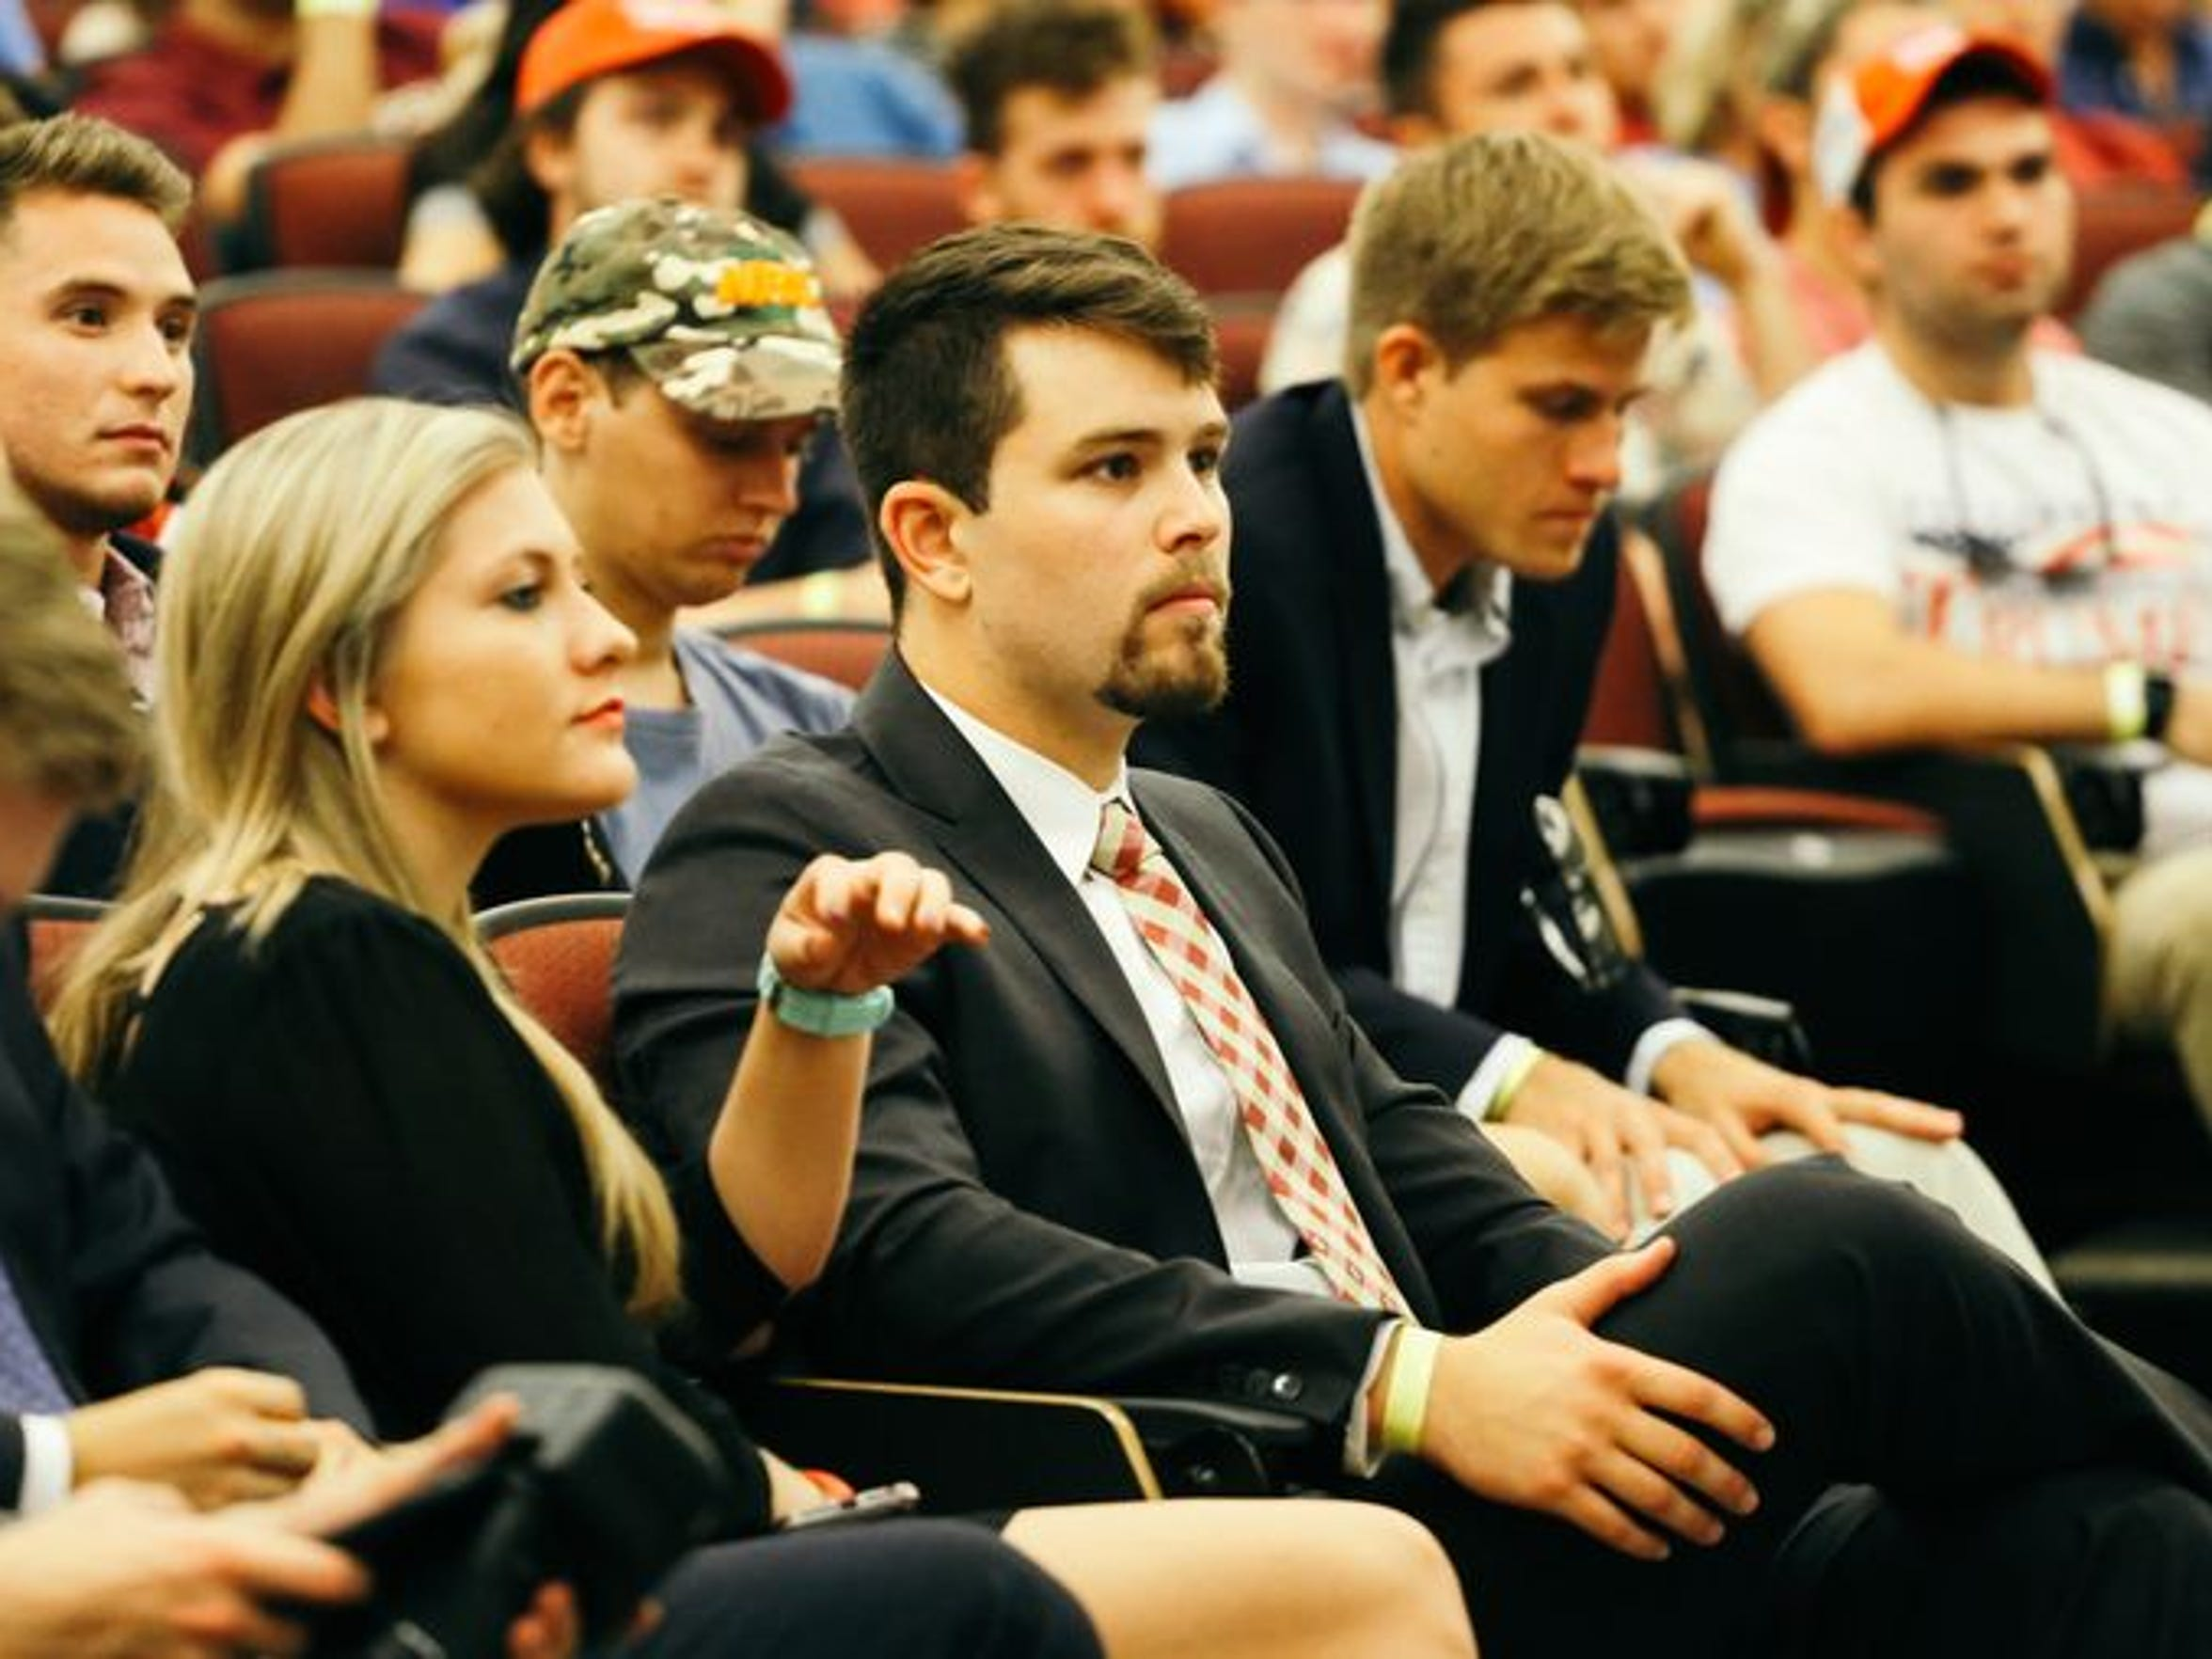 James Dilmore, president of the College Republicans, watches as Milo Yiannopoulus speaks on campus.